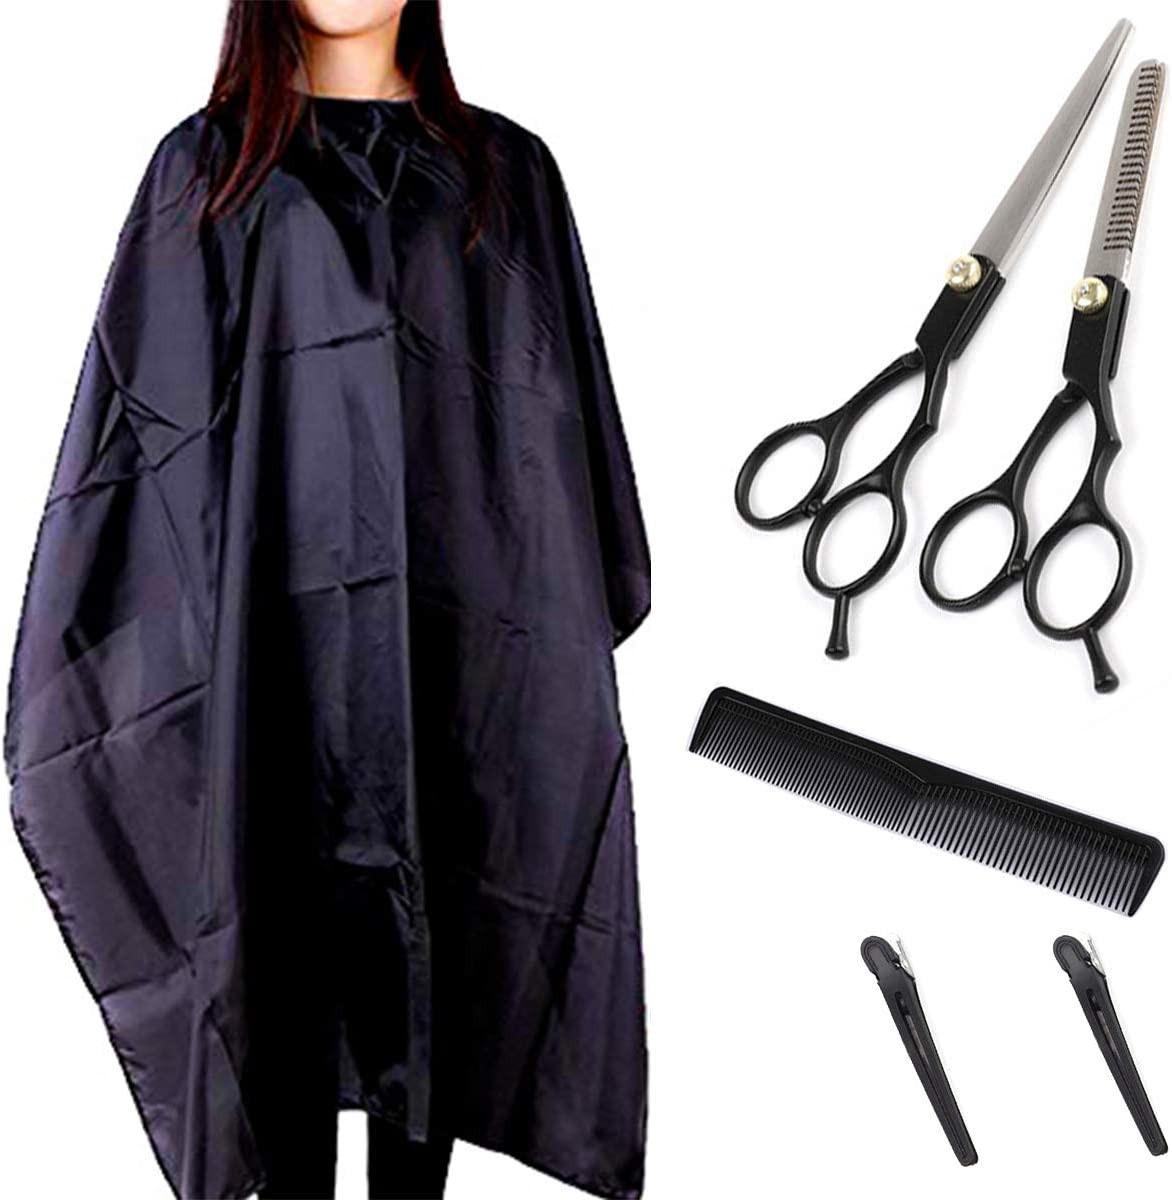 Max 72% OFF Barber Cape Hair Cutting Kits 6'' Scissors Hairdressing B free shipping